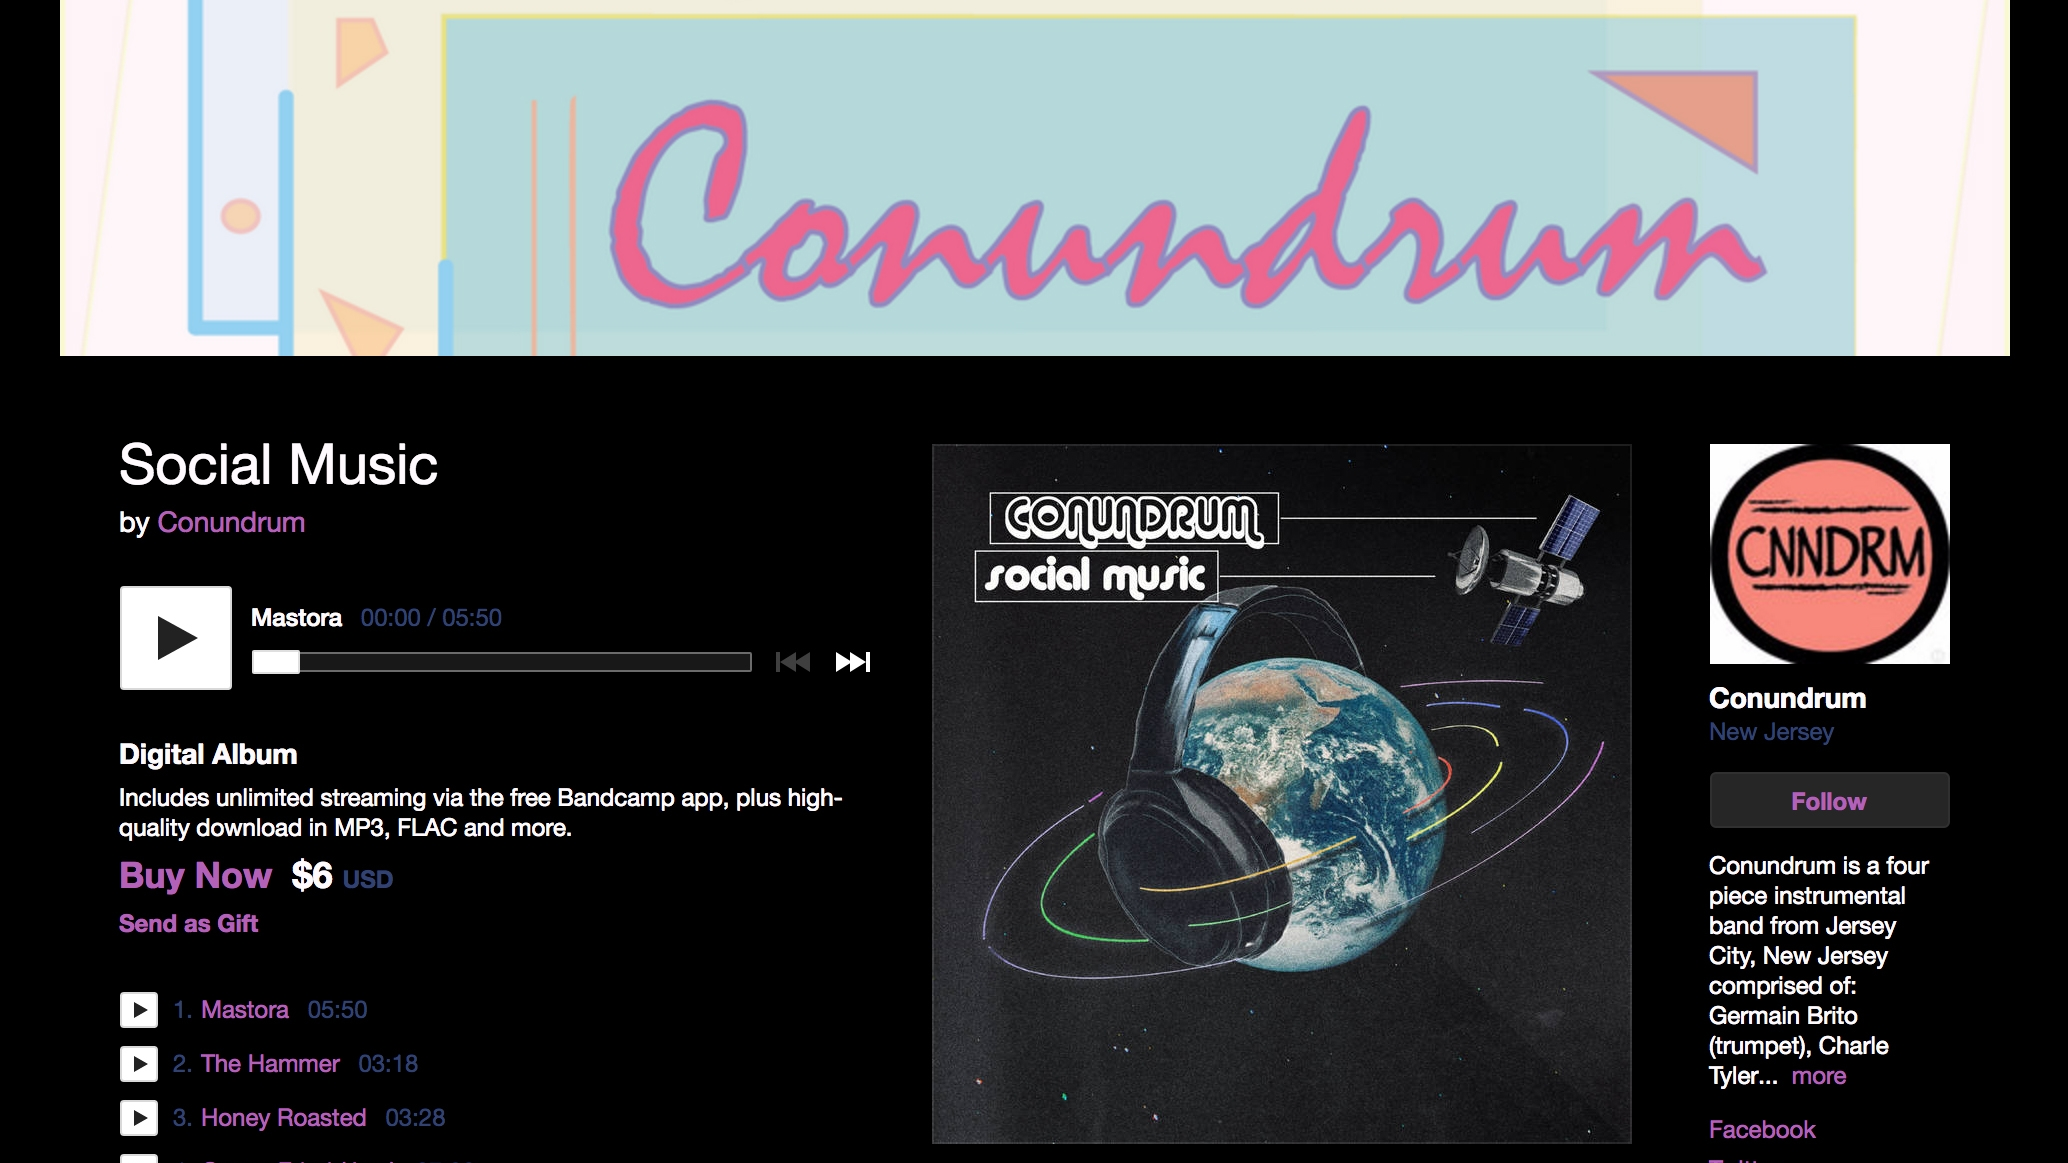 Conundrumtv.bandcamp.com/releases